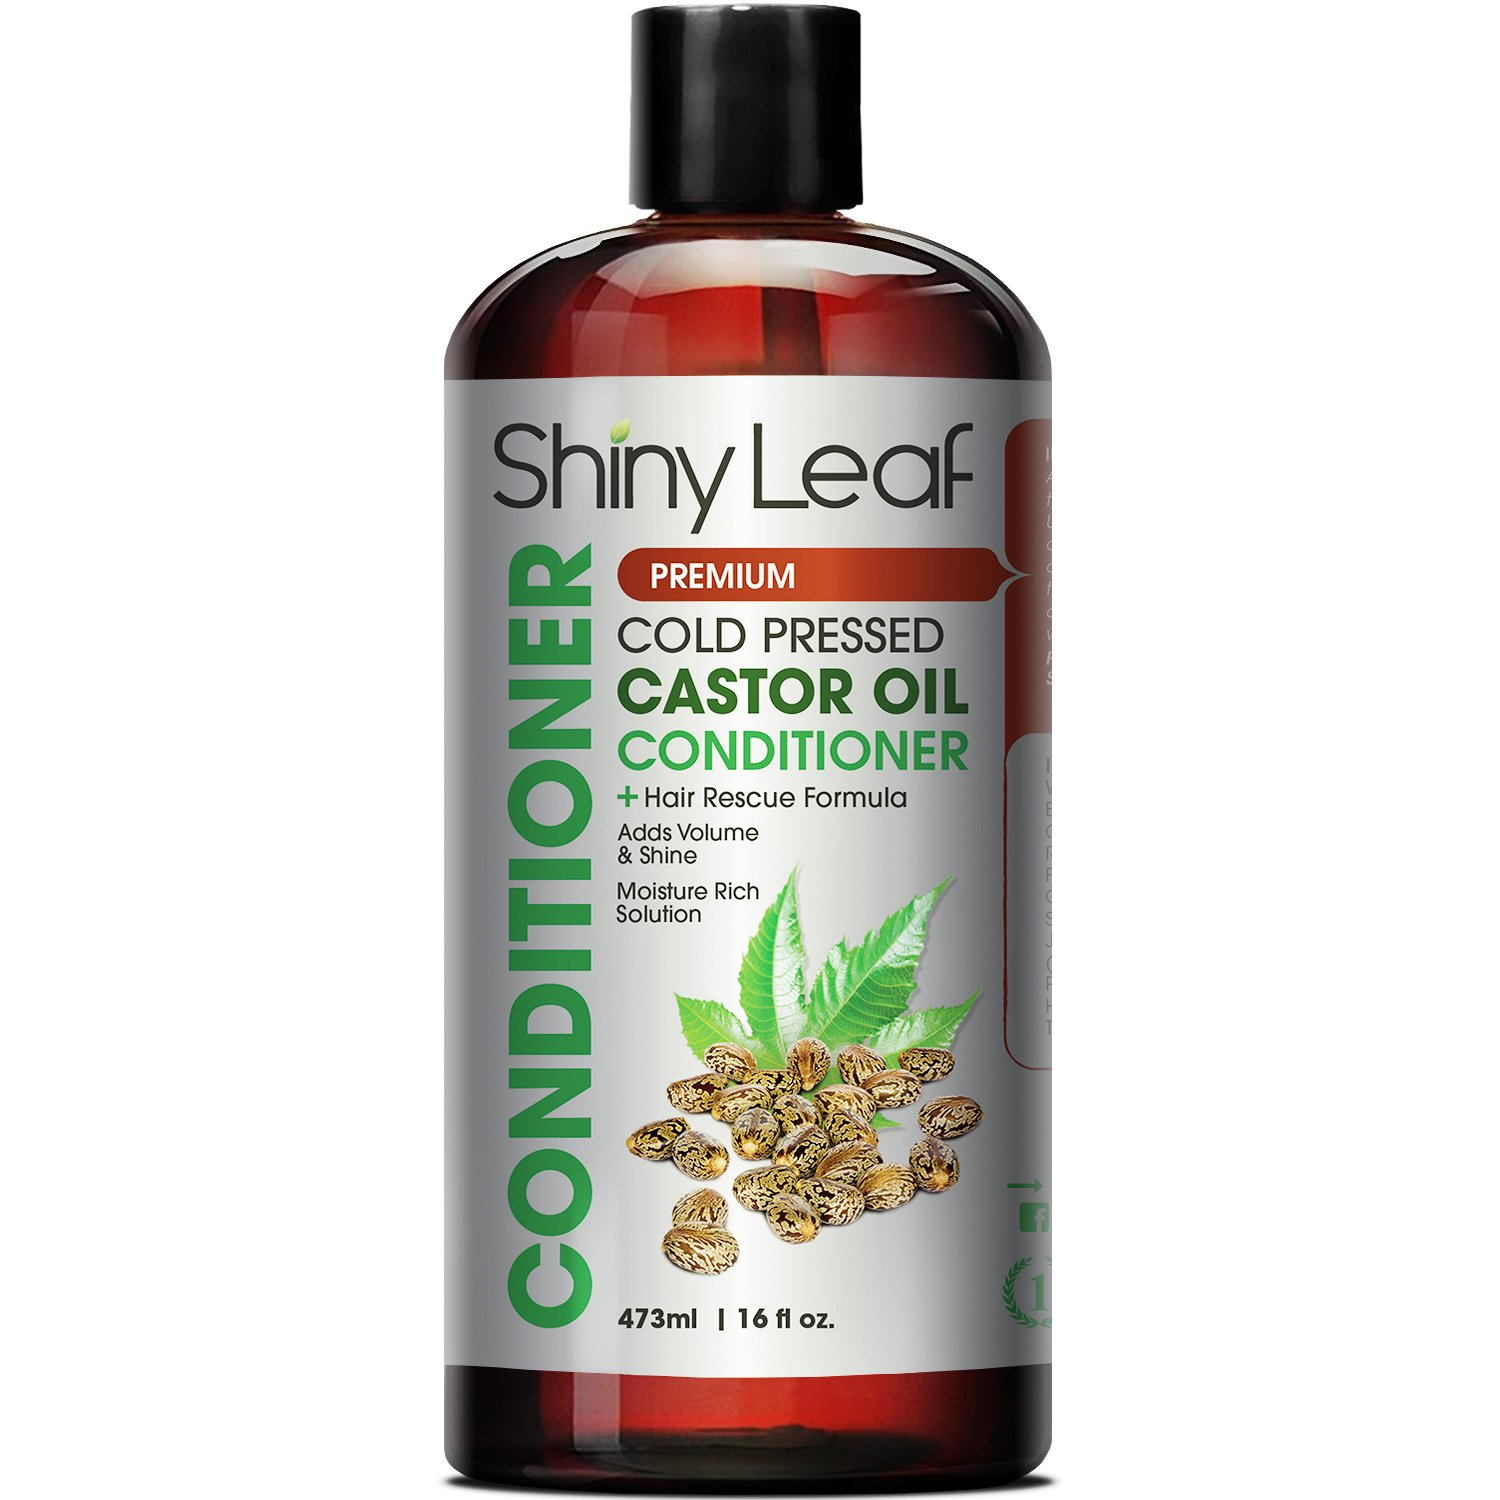 Shiny Leaf Cold Pressed Castor Oil Conditioner – Premium Hair Regrowth Conditioner with Cold Pressed Castor Oil, For All Hair Types, Moisturizes Hair, Keeps Hair Silky Soft and Smooth, 16 oz (473ml)